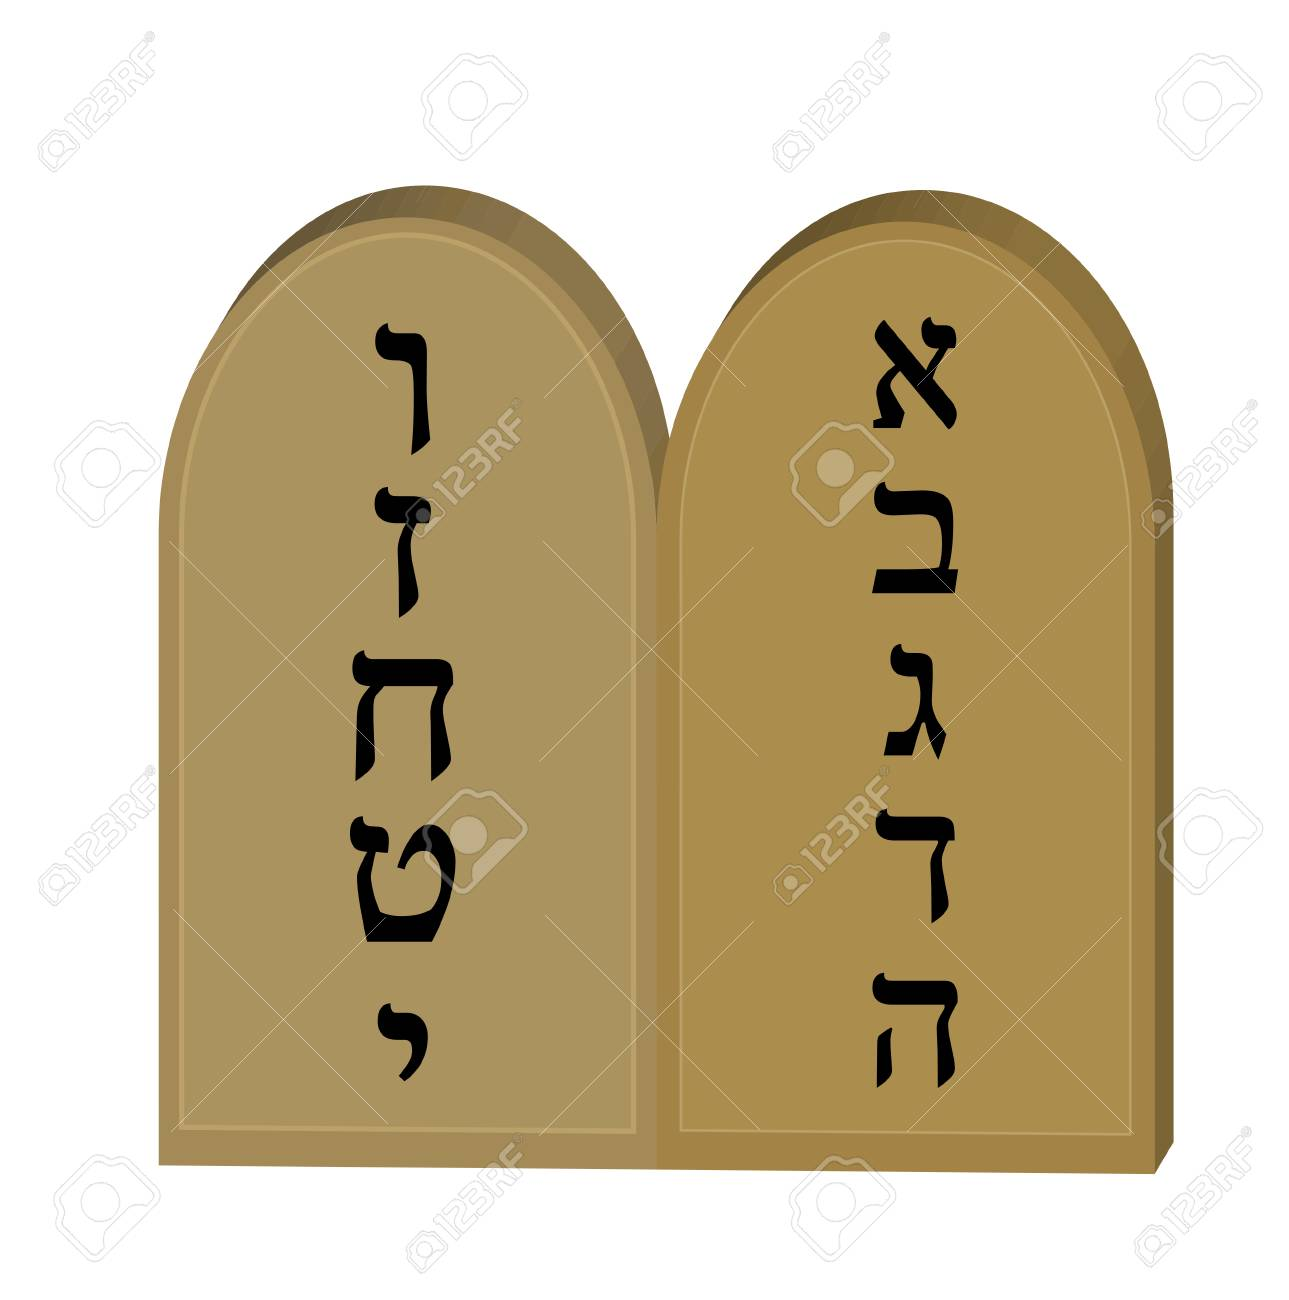 Tablets Jewish from 10 commandments icon, flat, cartoon style.